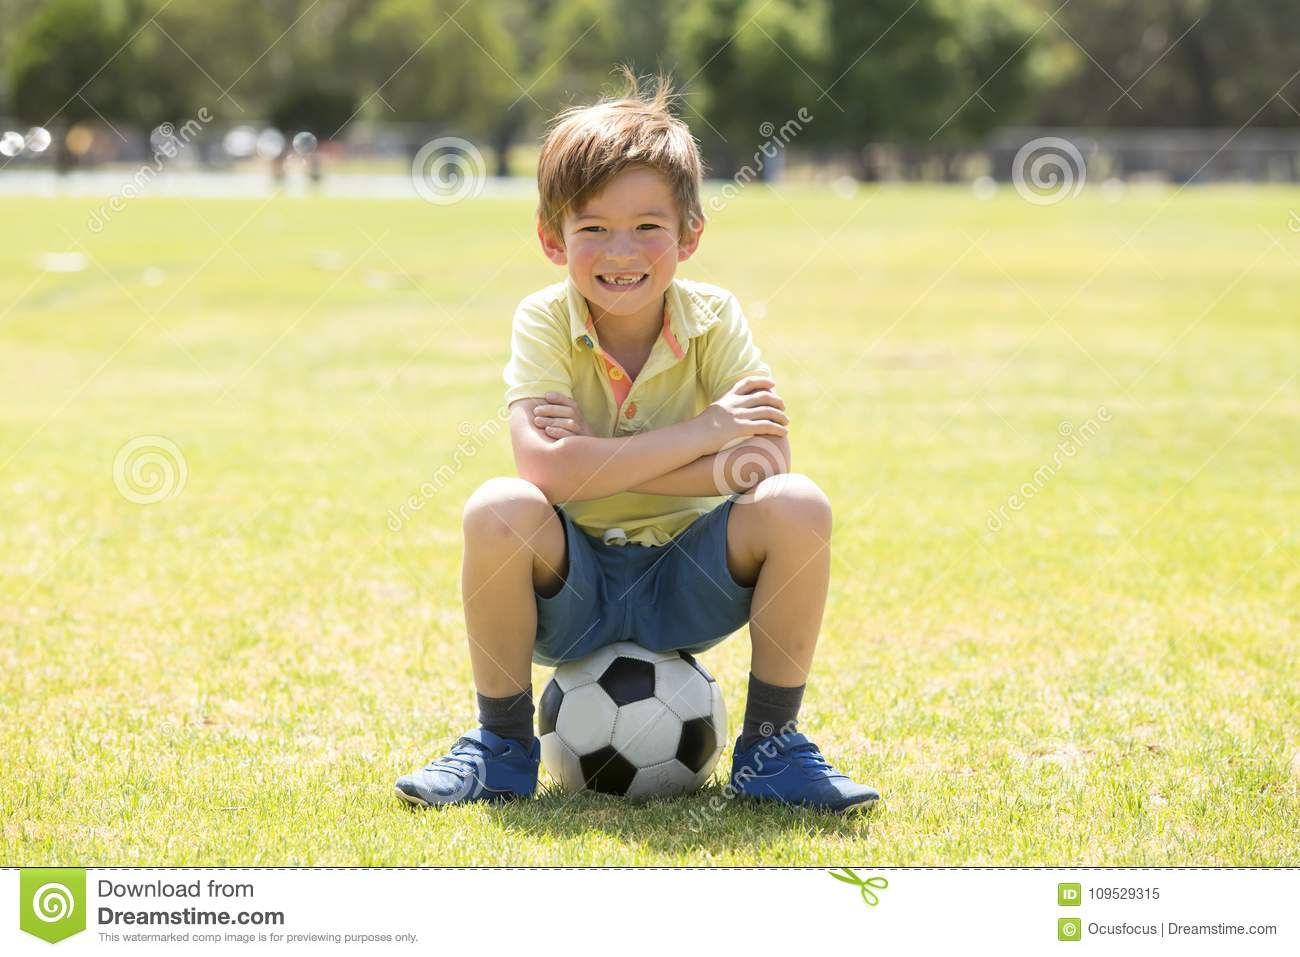 Kid 7 or 8 years old enjoying happy playing football soccer at grass city park field posing smiling proud sitting on the ball in